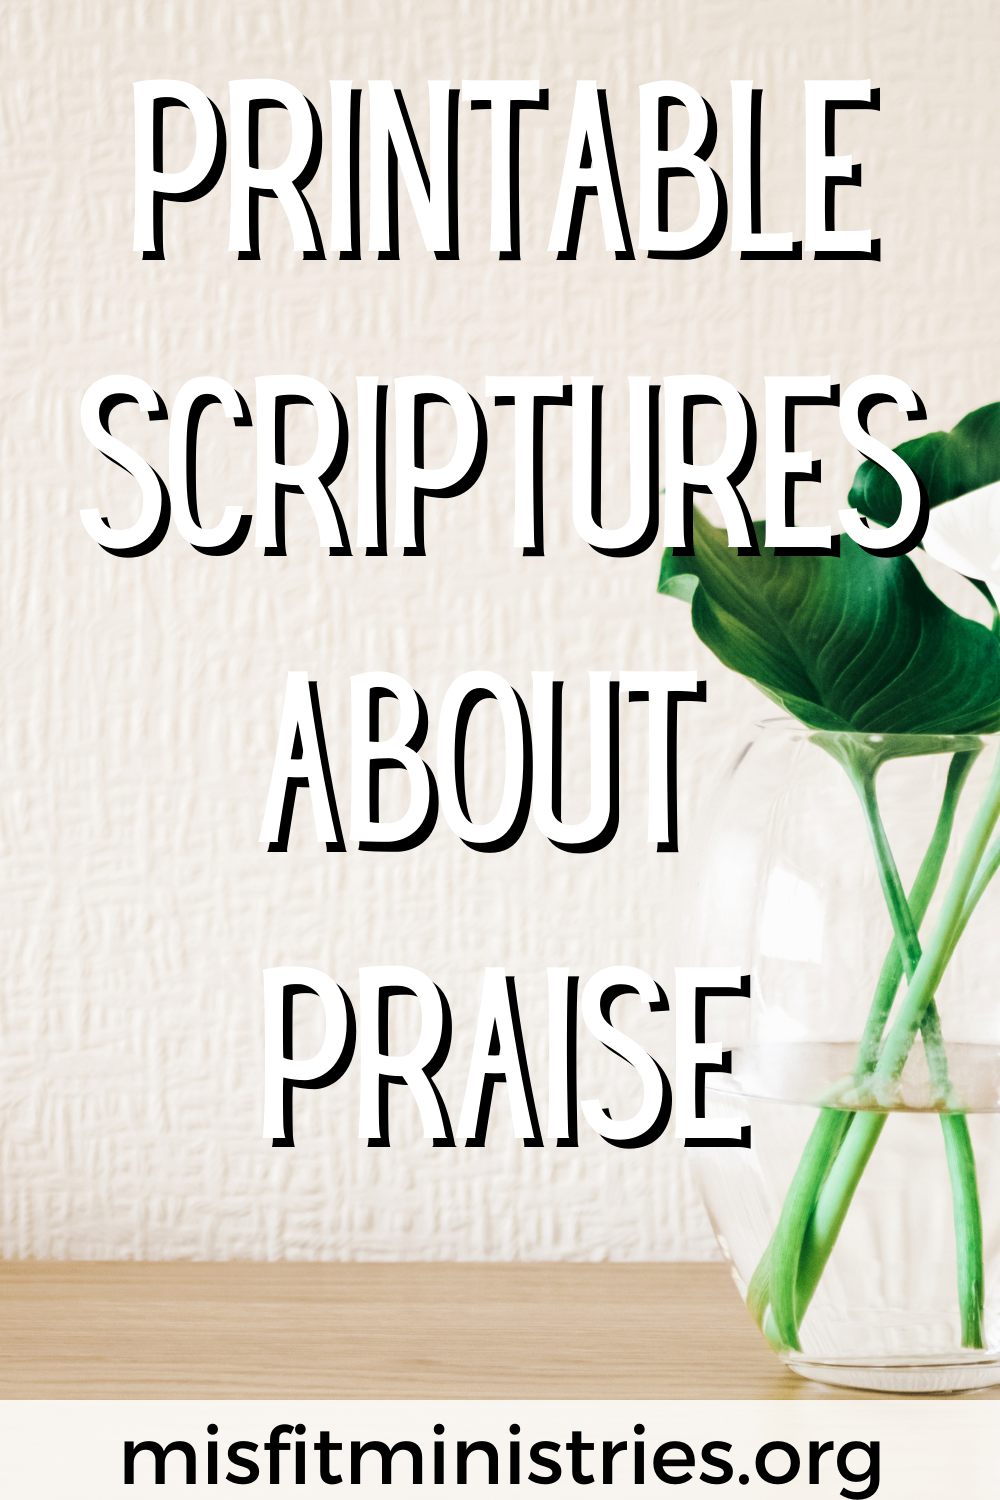 Printable Scriptures About Praise